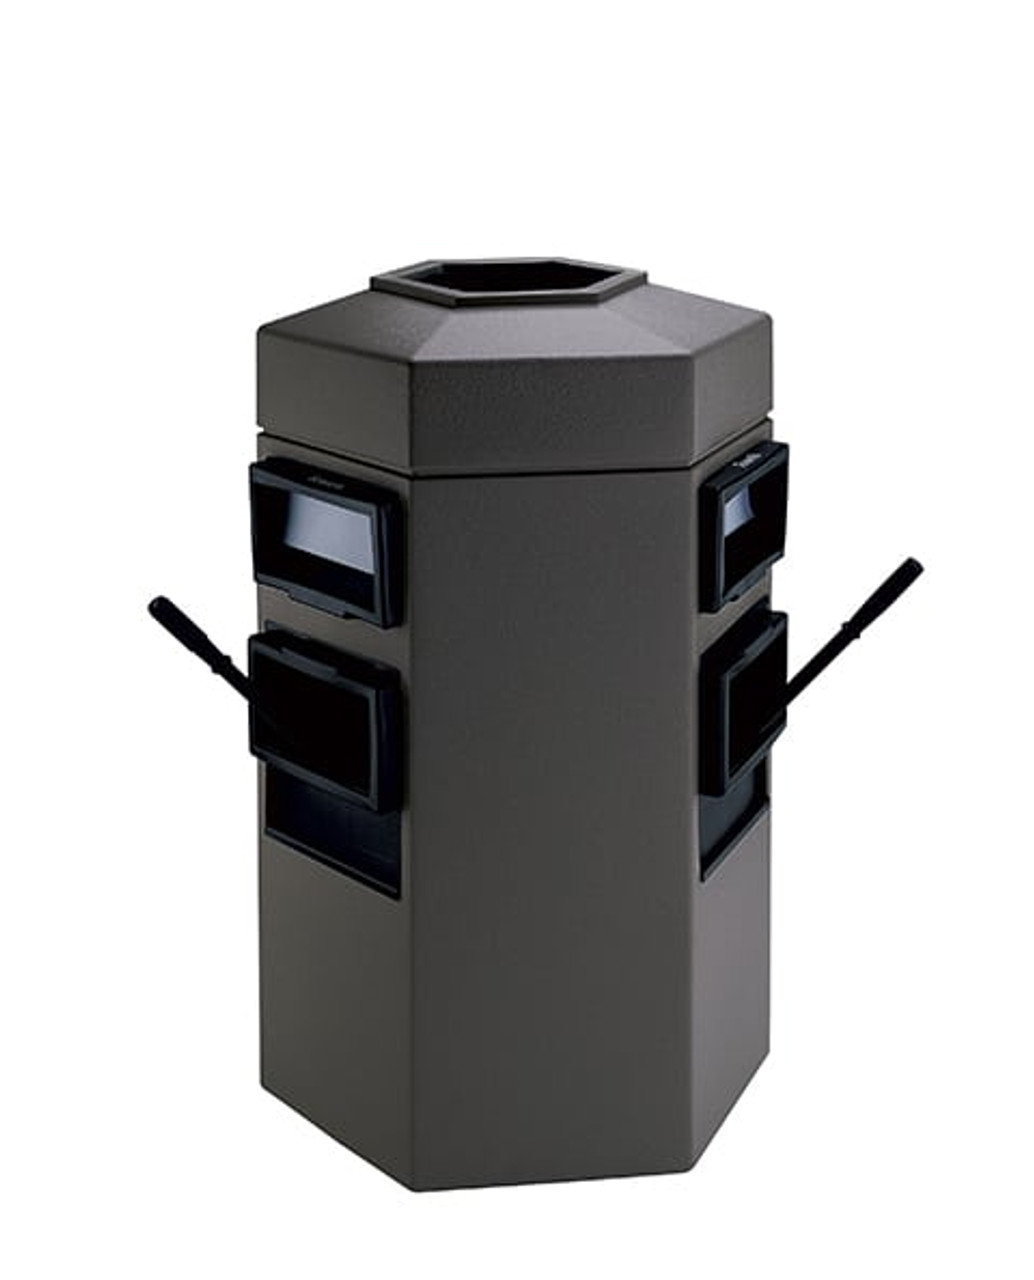 35 Gallon Double Sided Gas Station Outdoor Trash Can Auto Attendant Gray 755424